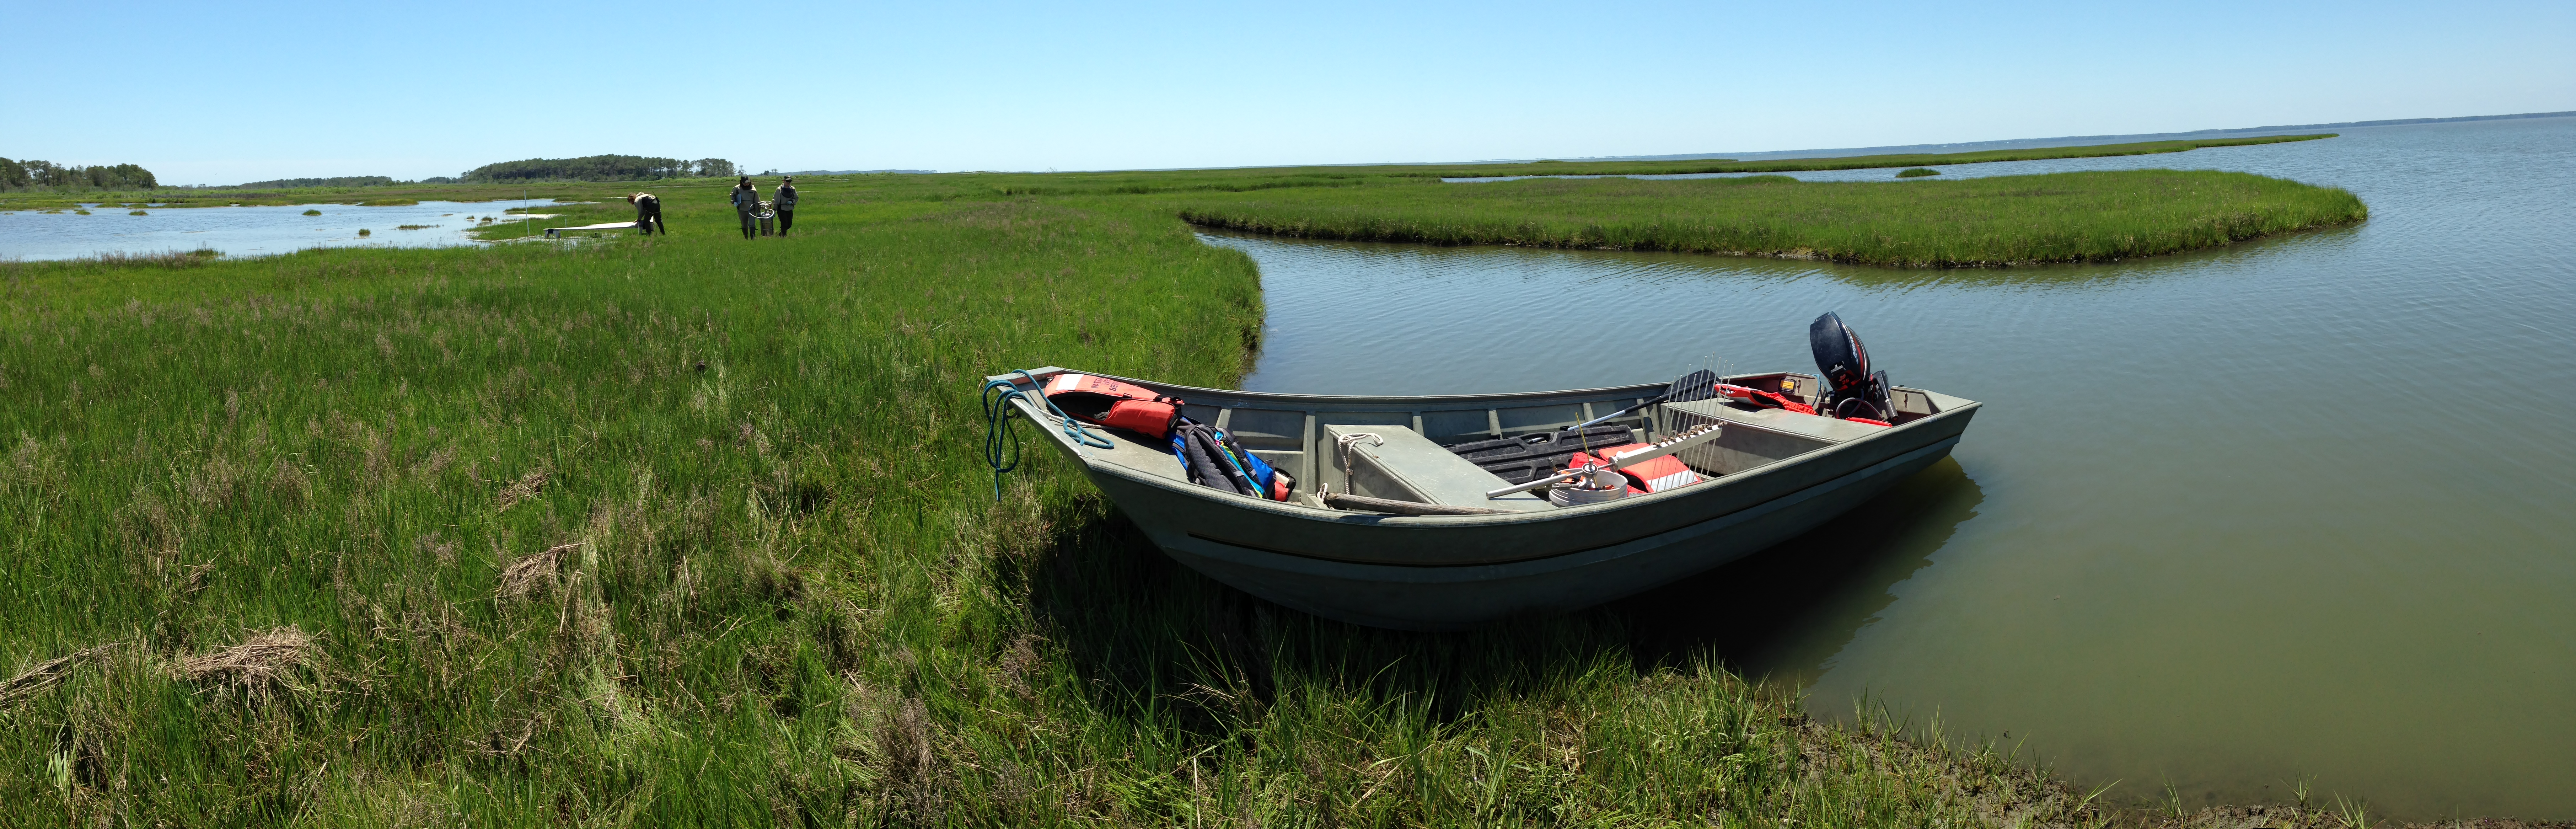 Jim and a team of NPS scientists haul gear by boat and on foot into wetlands in coastal National Parks to study whether salt marshes are building up sediment fast enough to keep pace with sea level rise. NPS photo/J. Lynch.